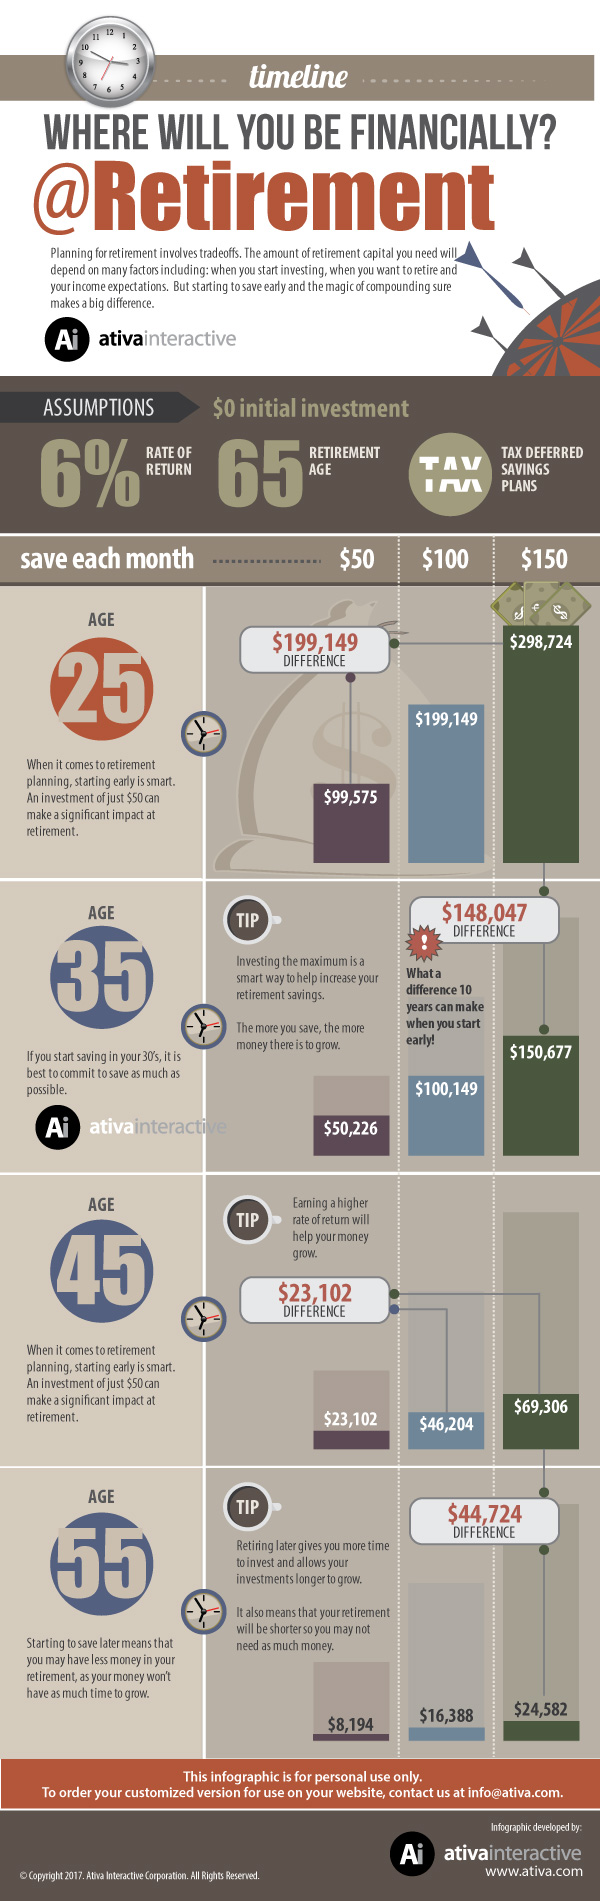 Where Will You Be Financially at Retirement Ativa Infographic